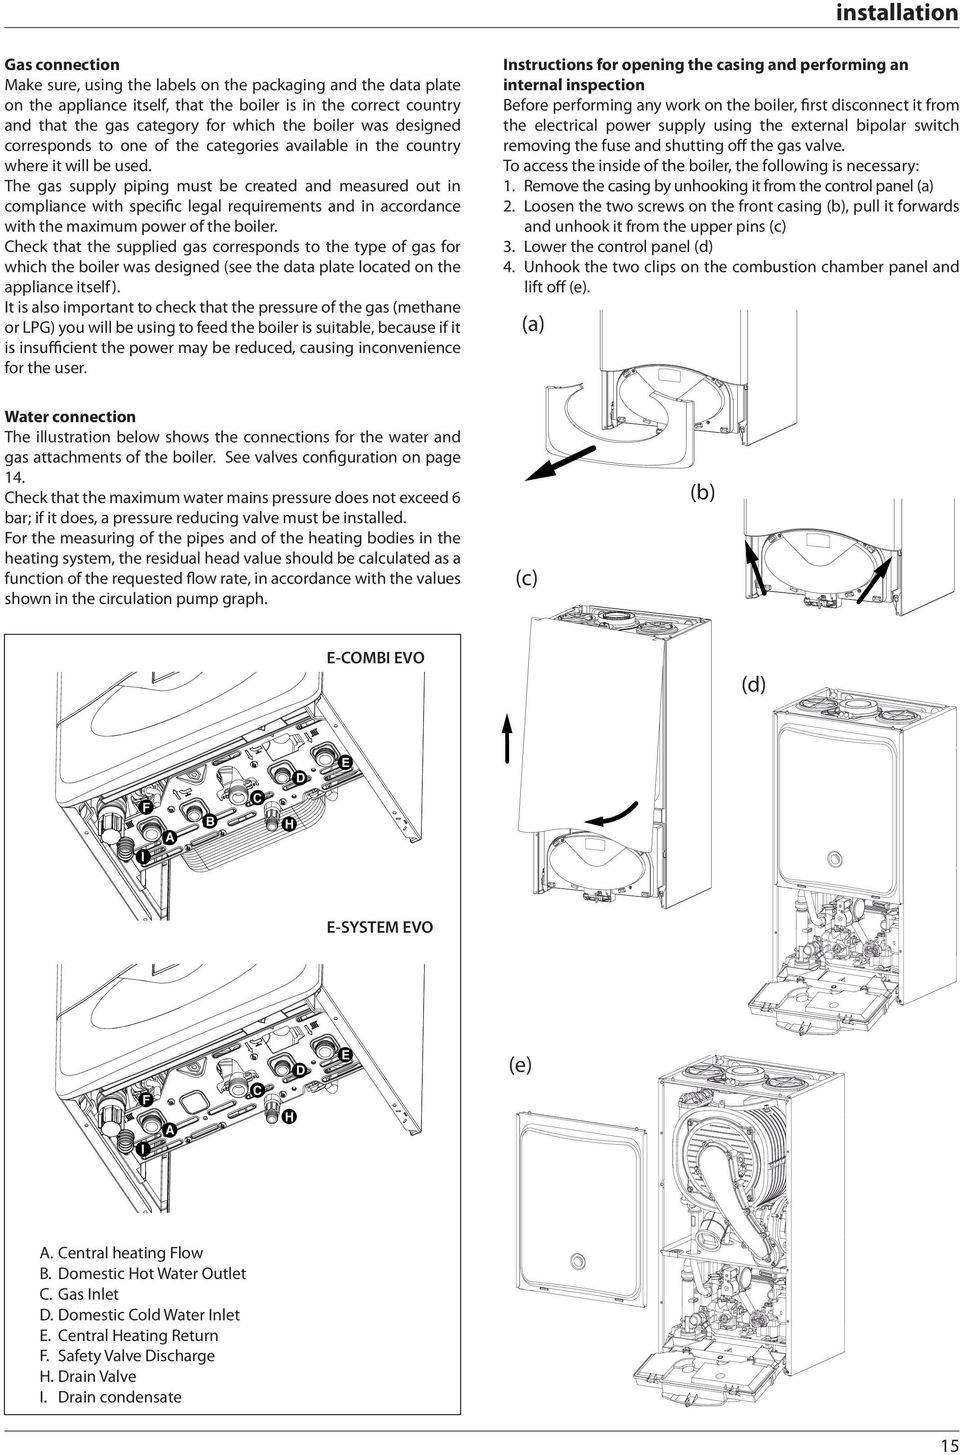 E Combi Evo System Pdf 300 Wiring Diagram The Gas Supply Piping Must Be Created And Measured Out In Compliance With Specific Legal Requirements